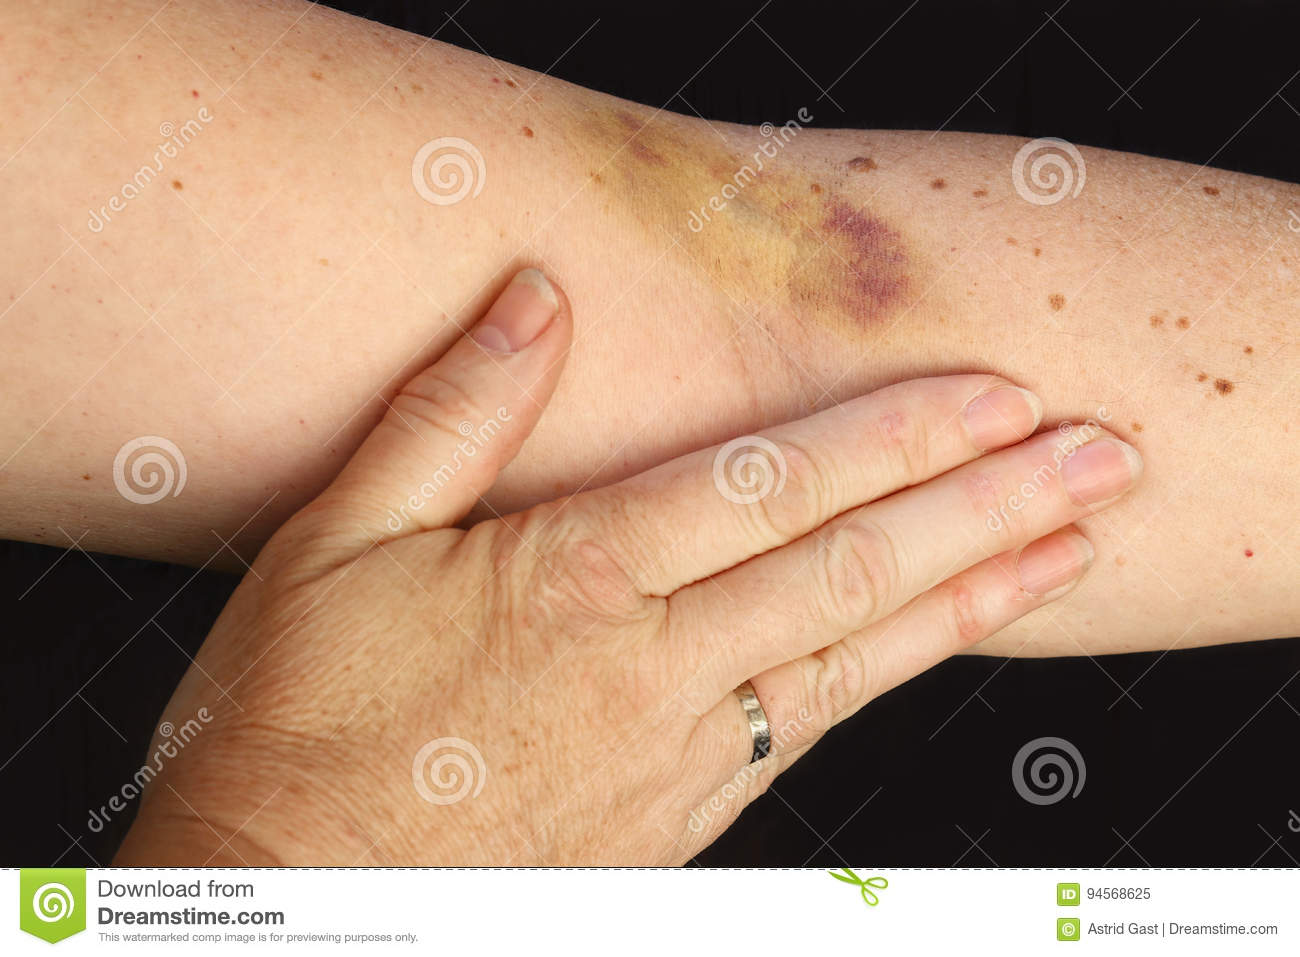 A Hematoma On A Woman`s Arm Stock Image - Image of